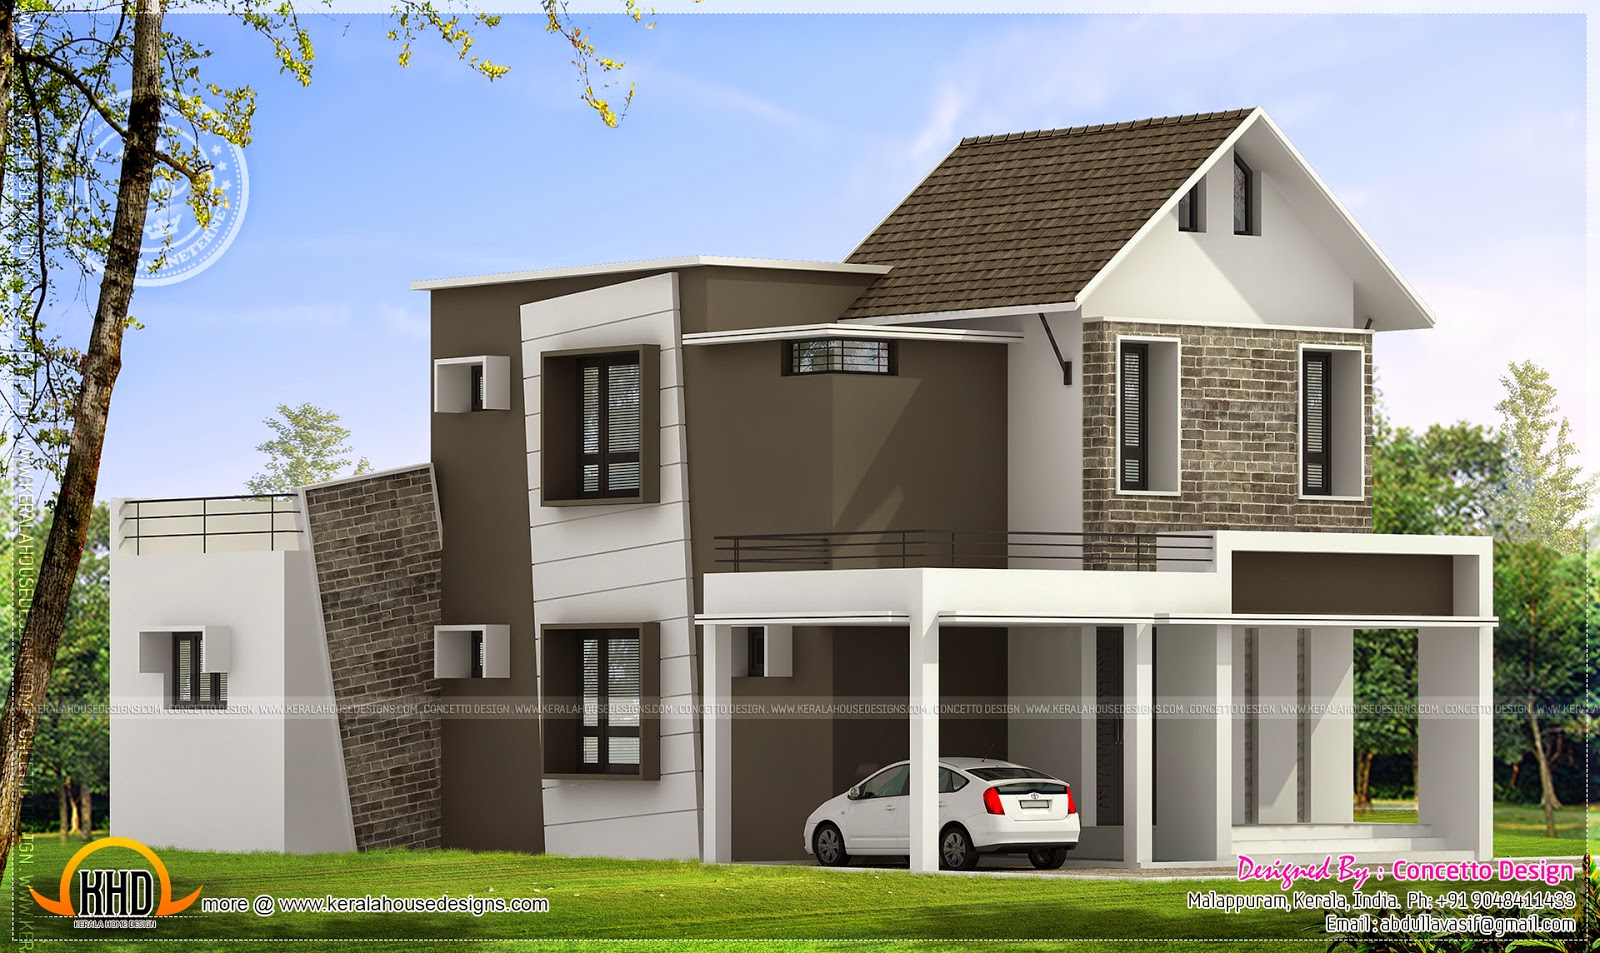 260 square yard house exterior kerala home design and On home designes